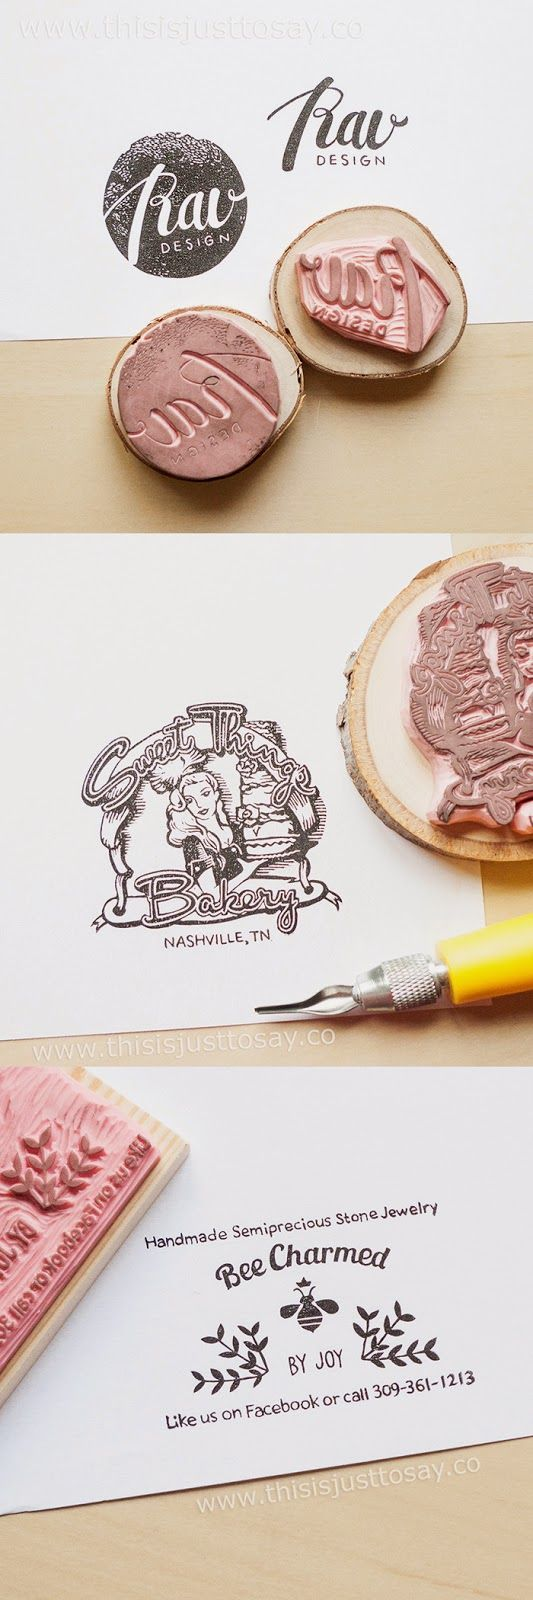 These custom business logo stamps are made by Tyr from Stockholm. You can commission a stamp by her at an affordable price too - on www.thisisjusttosay.co